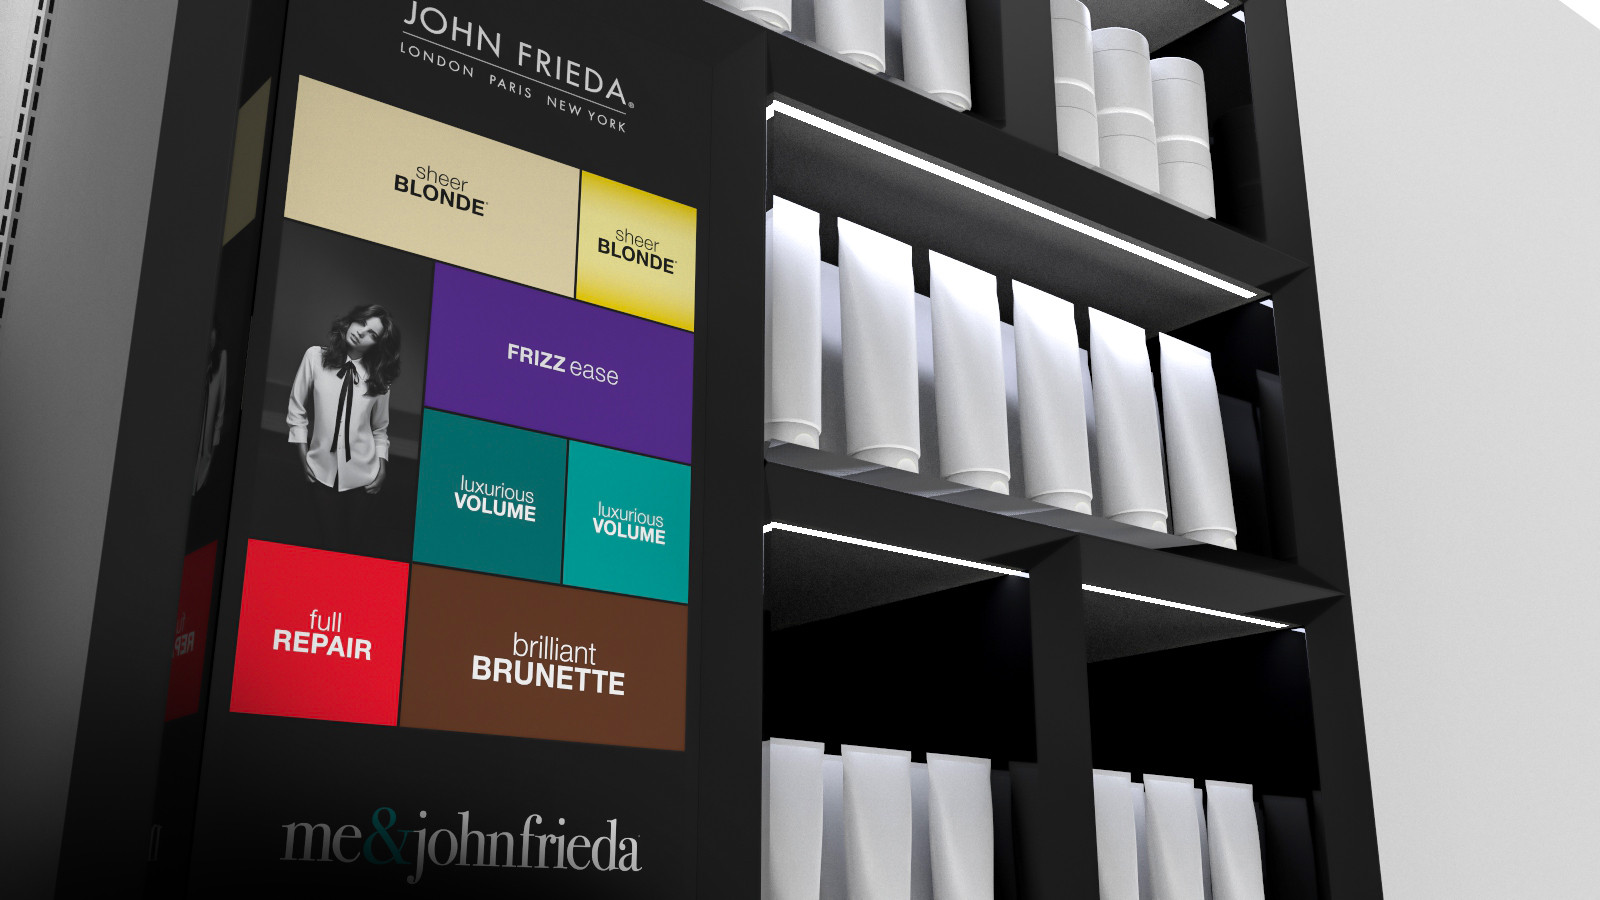 John Frieda 2nd placement 3.jpg